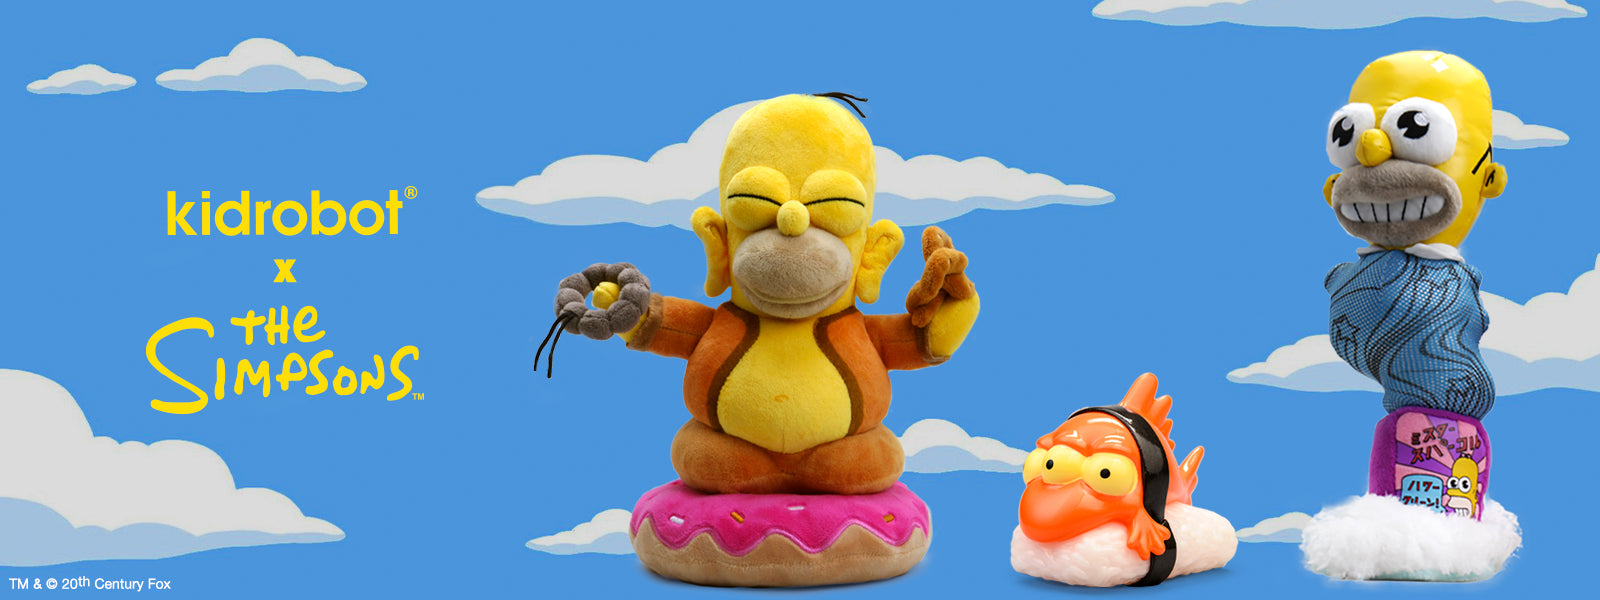 Kidrobot x The Simpsons Art Toys & Collectibles